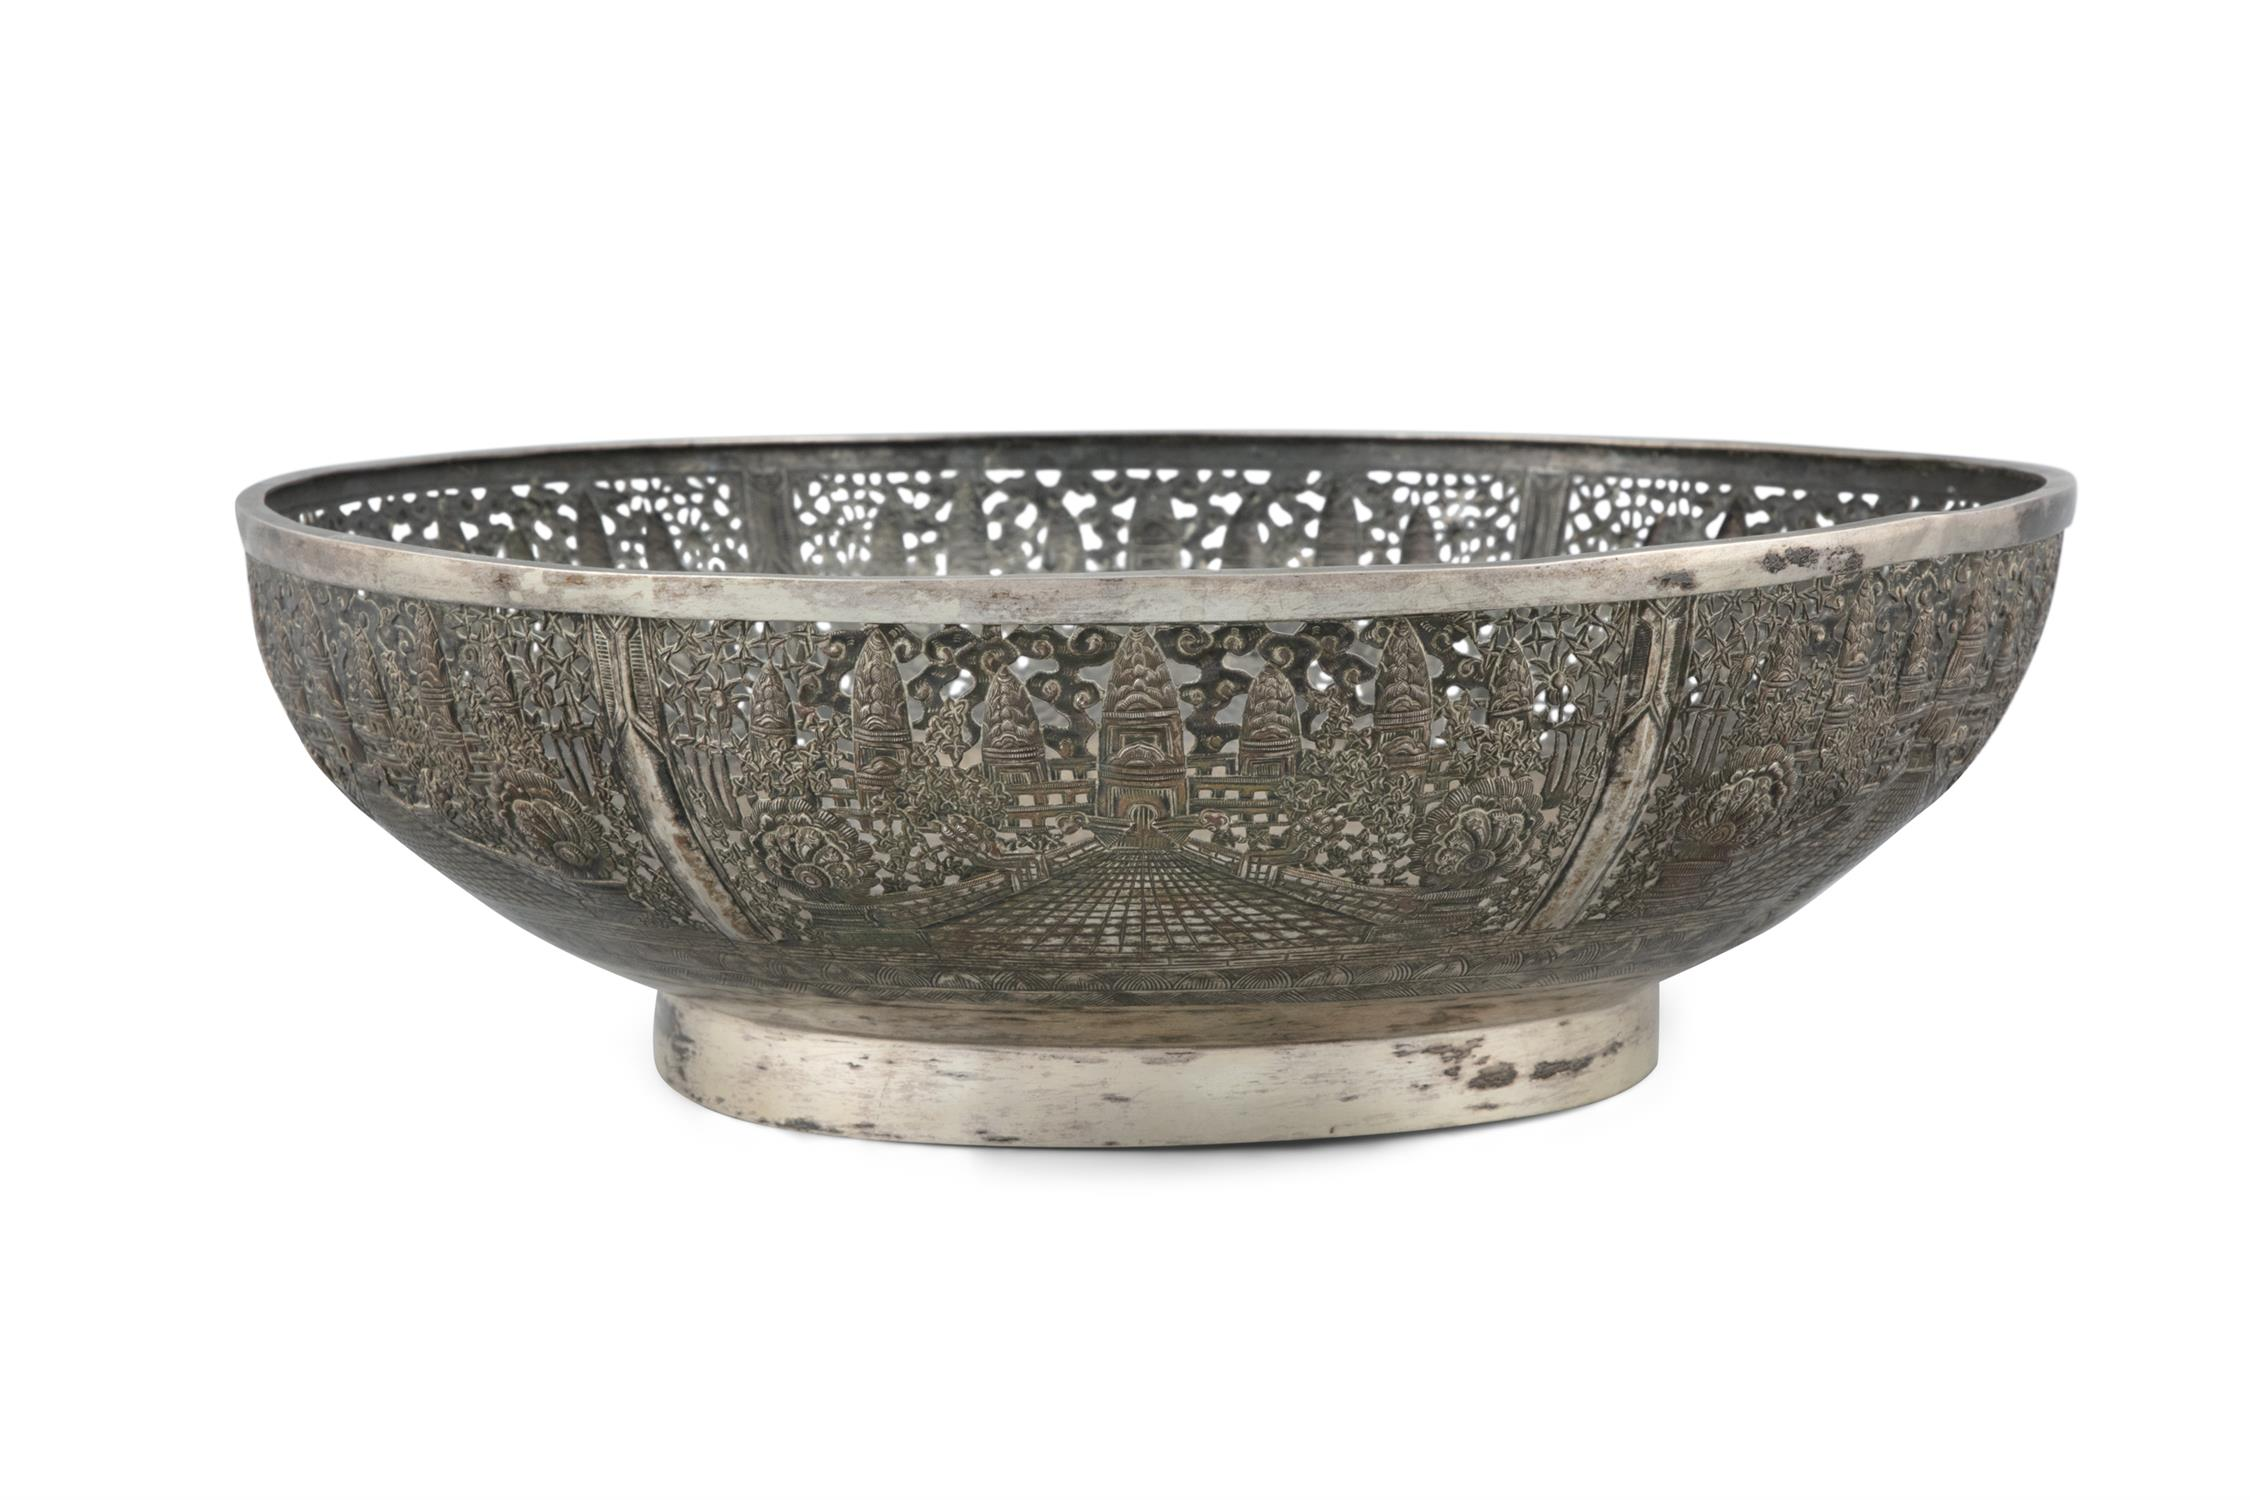 A LARGE RETICULATED 'ANGKOR VAT' SILVER BOWL Siam / Indochina, 20th century H: 10 cm - D: 28,5 cm - Image 3 of 4